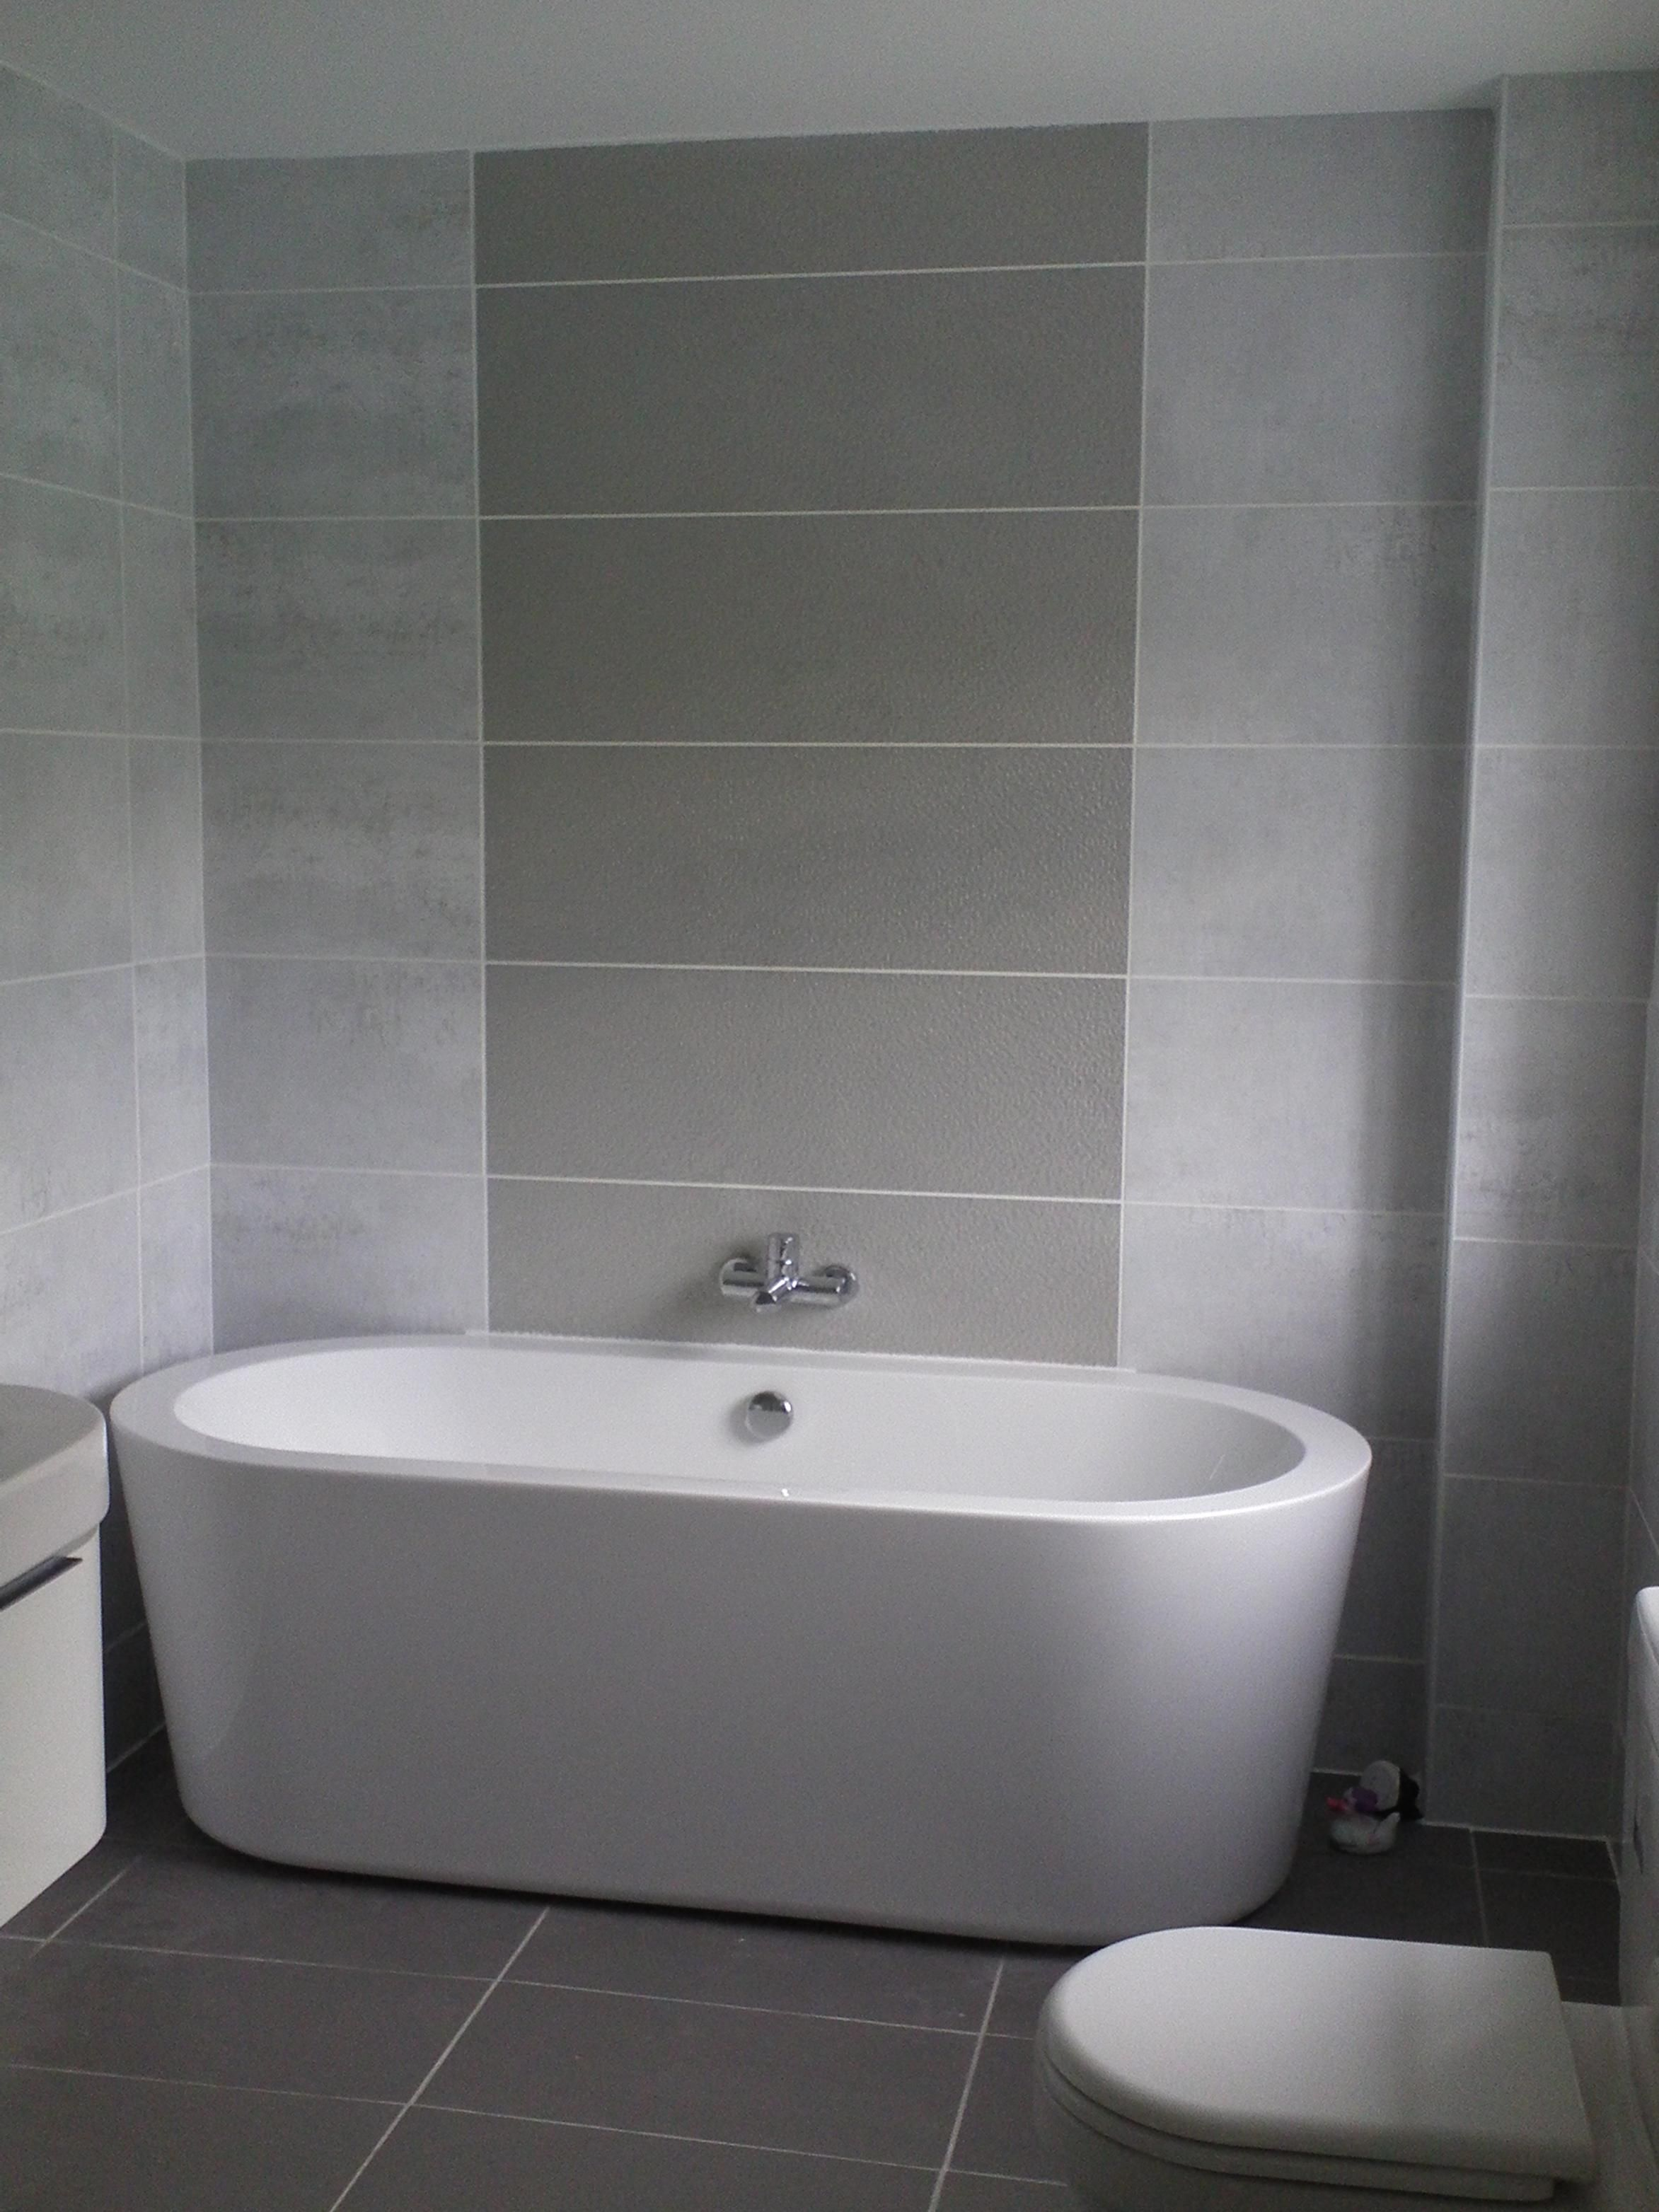 White Grey Tiles Bathroom Wall Added By Oval Bathtub And Toilet Bowl On Ceramics Flooring Breathtaking Ideas Of Shows